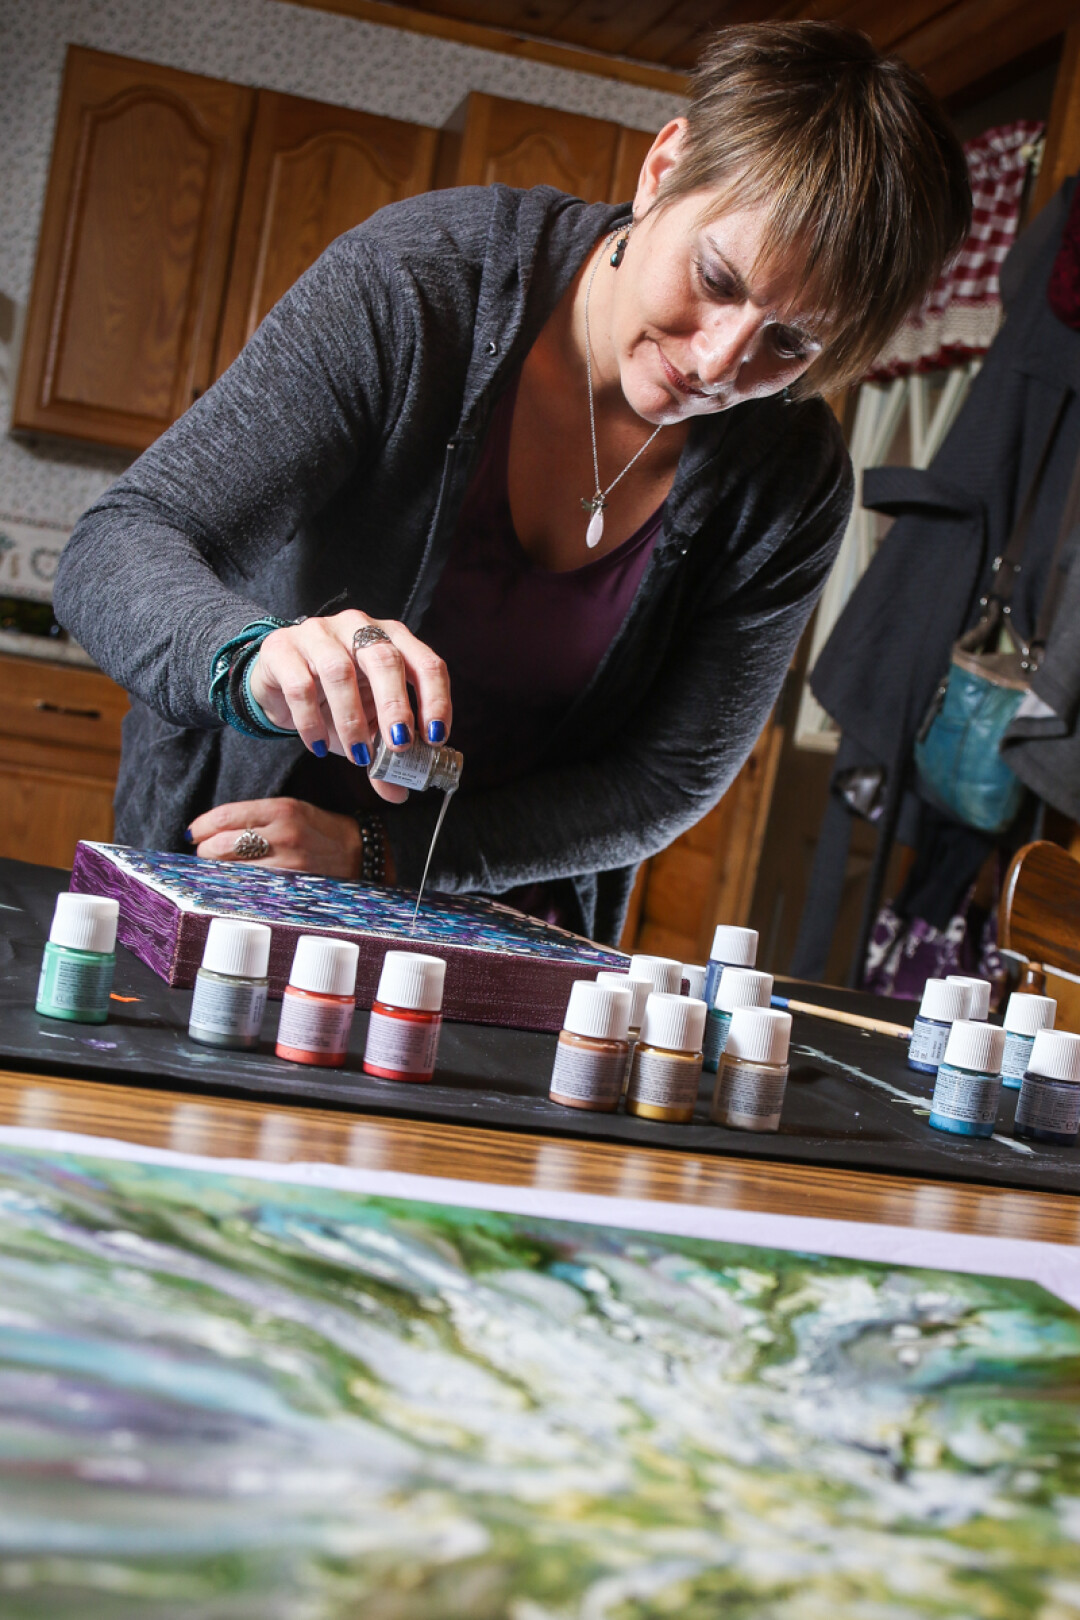 LET THE SPIRIT MOVE YOU. Artist Tanya Meyer creates one-of-a-kind art by pouring paint.